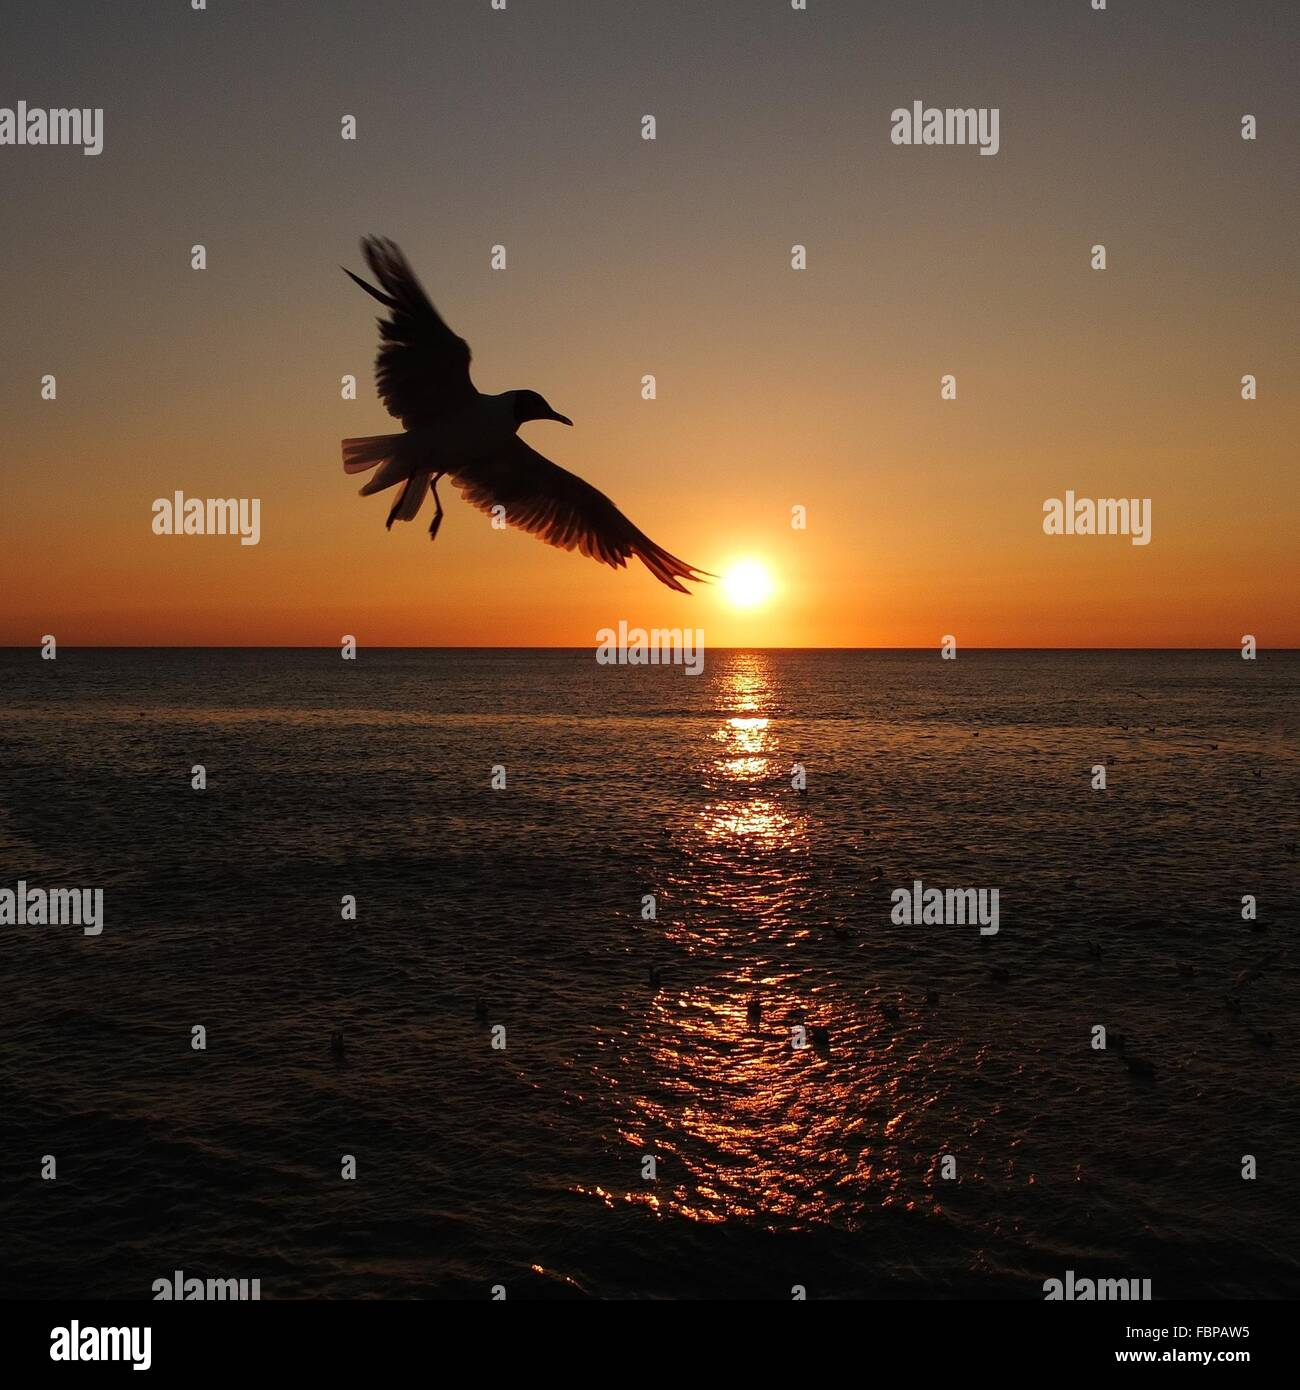 Silhouette Bird Flying Over Sea At Sunset - Stock Image